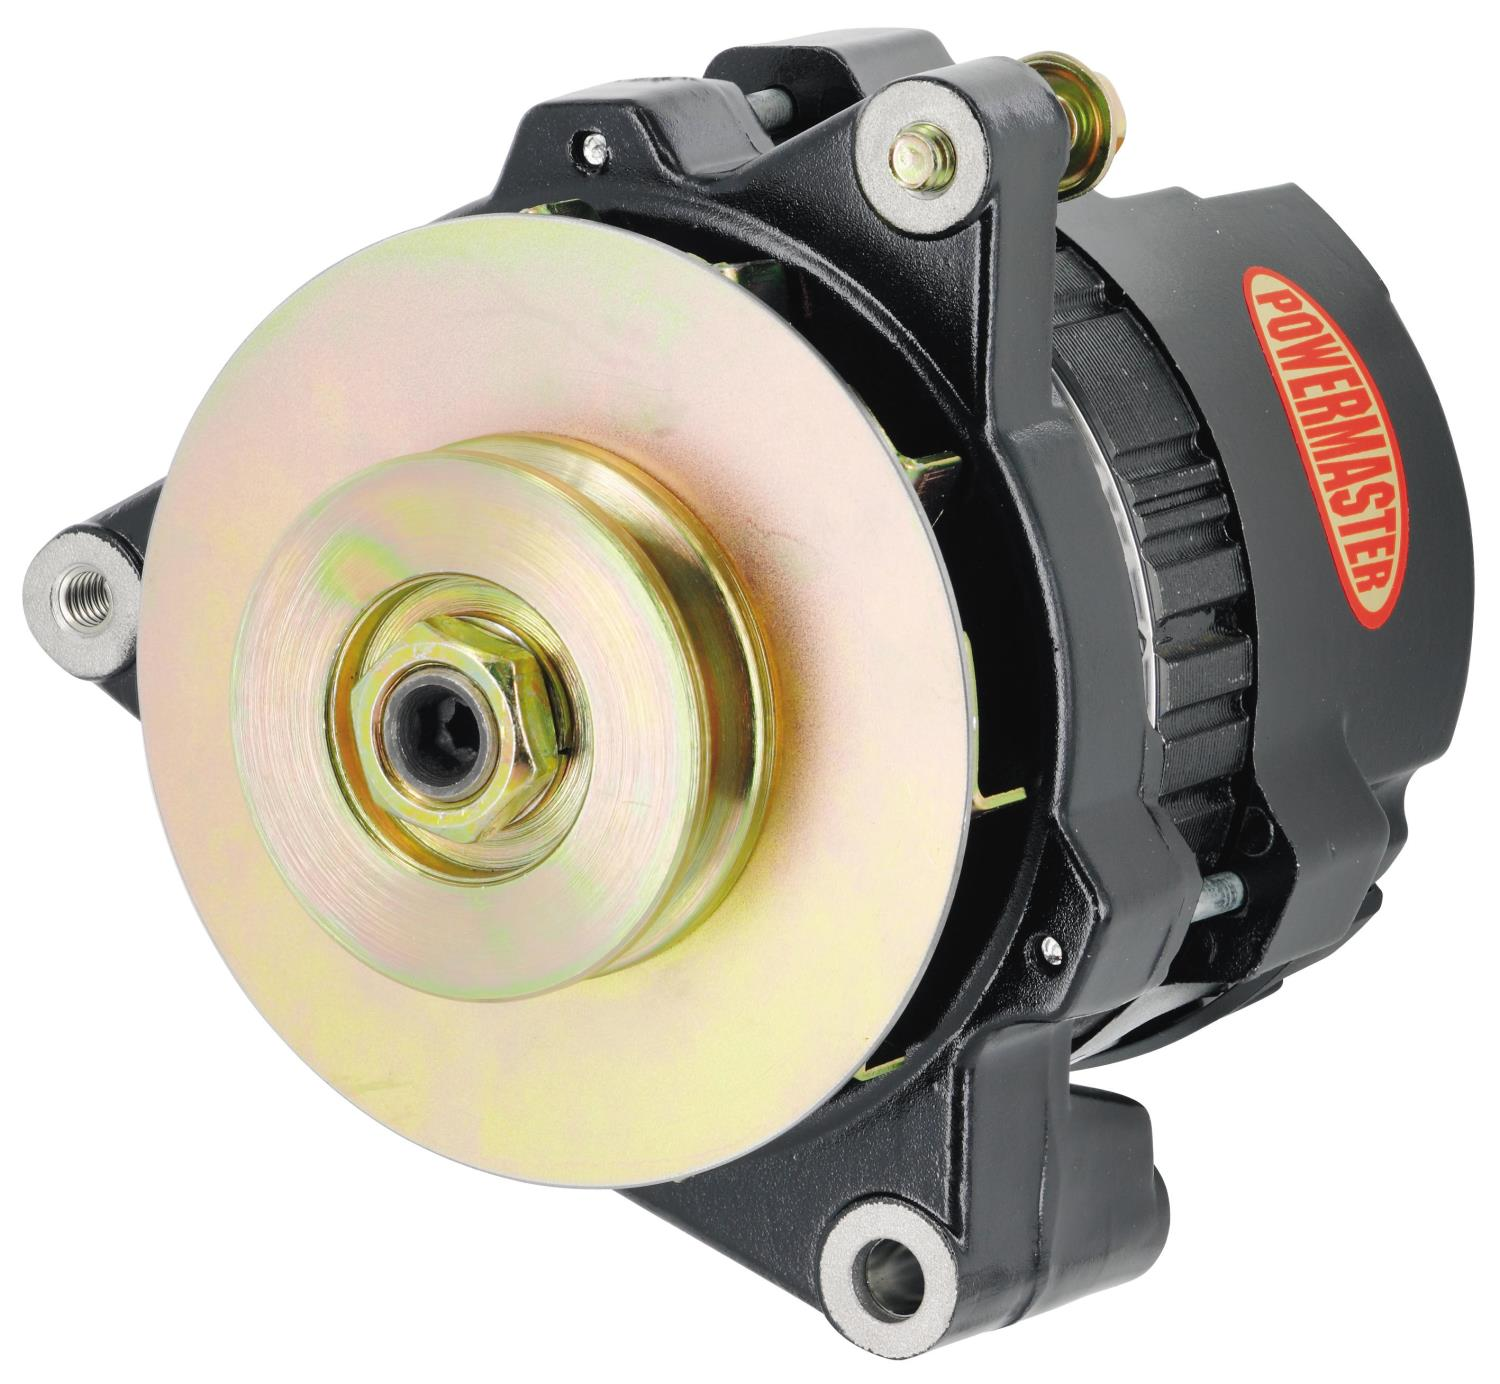 Powermaster 8476 - GM 5x5 Compact Race Alternators